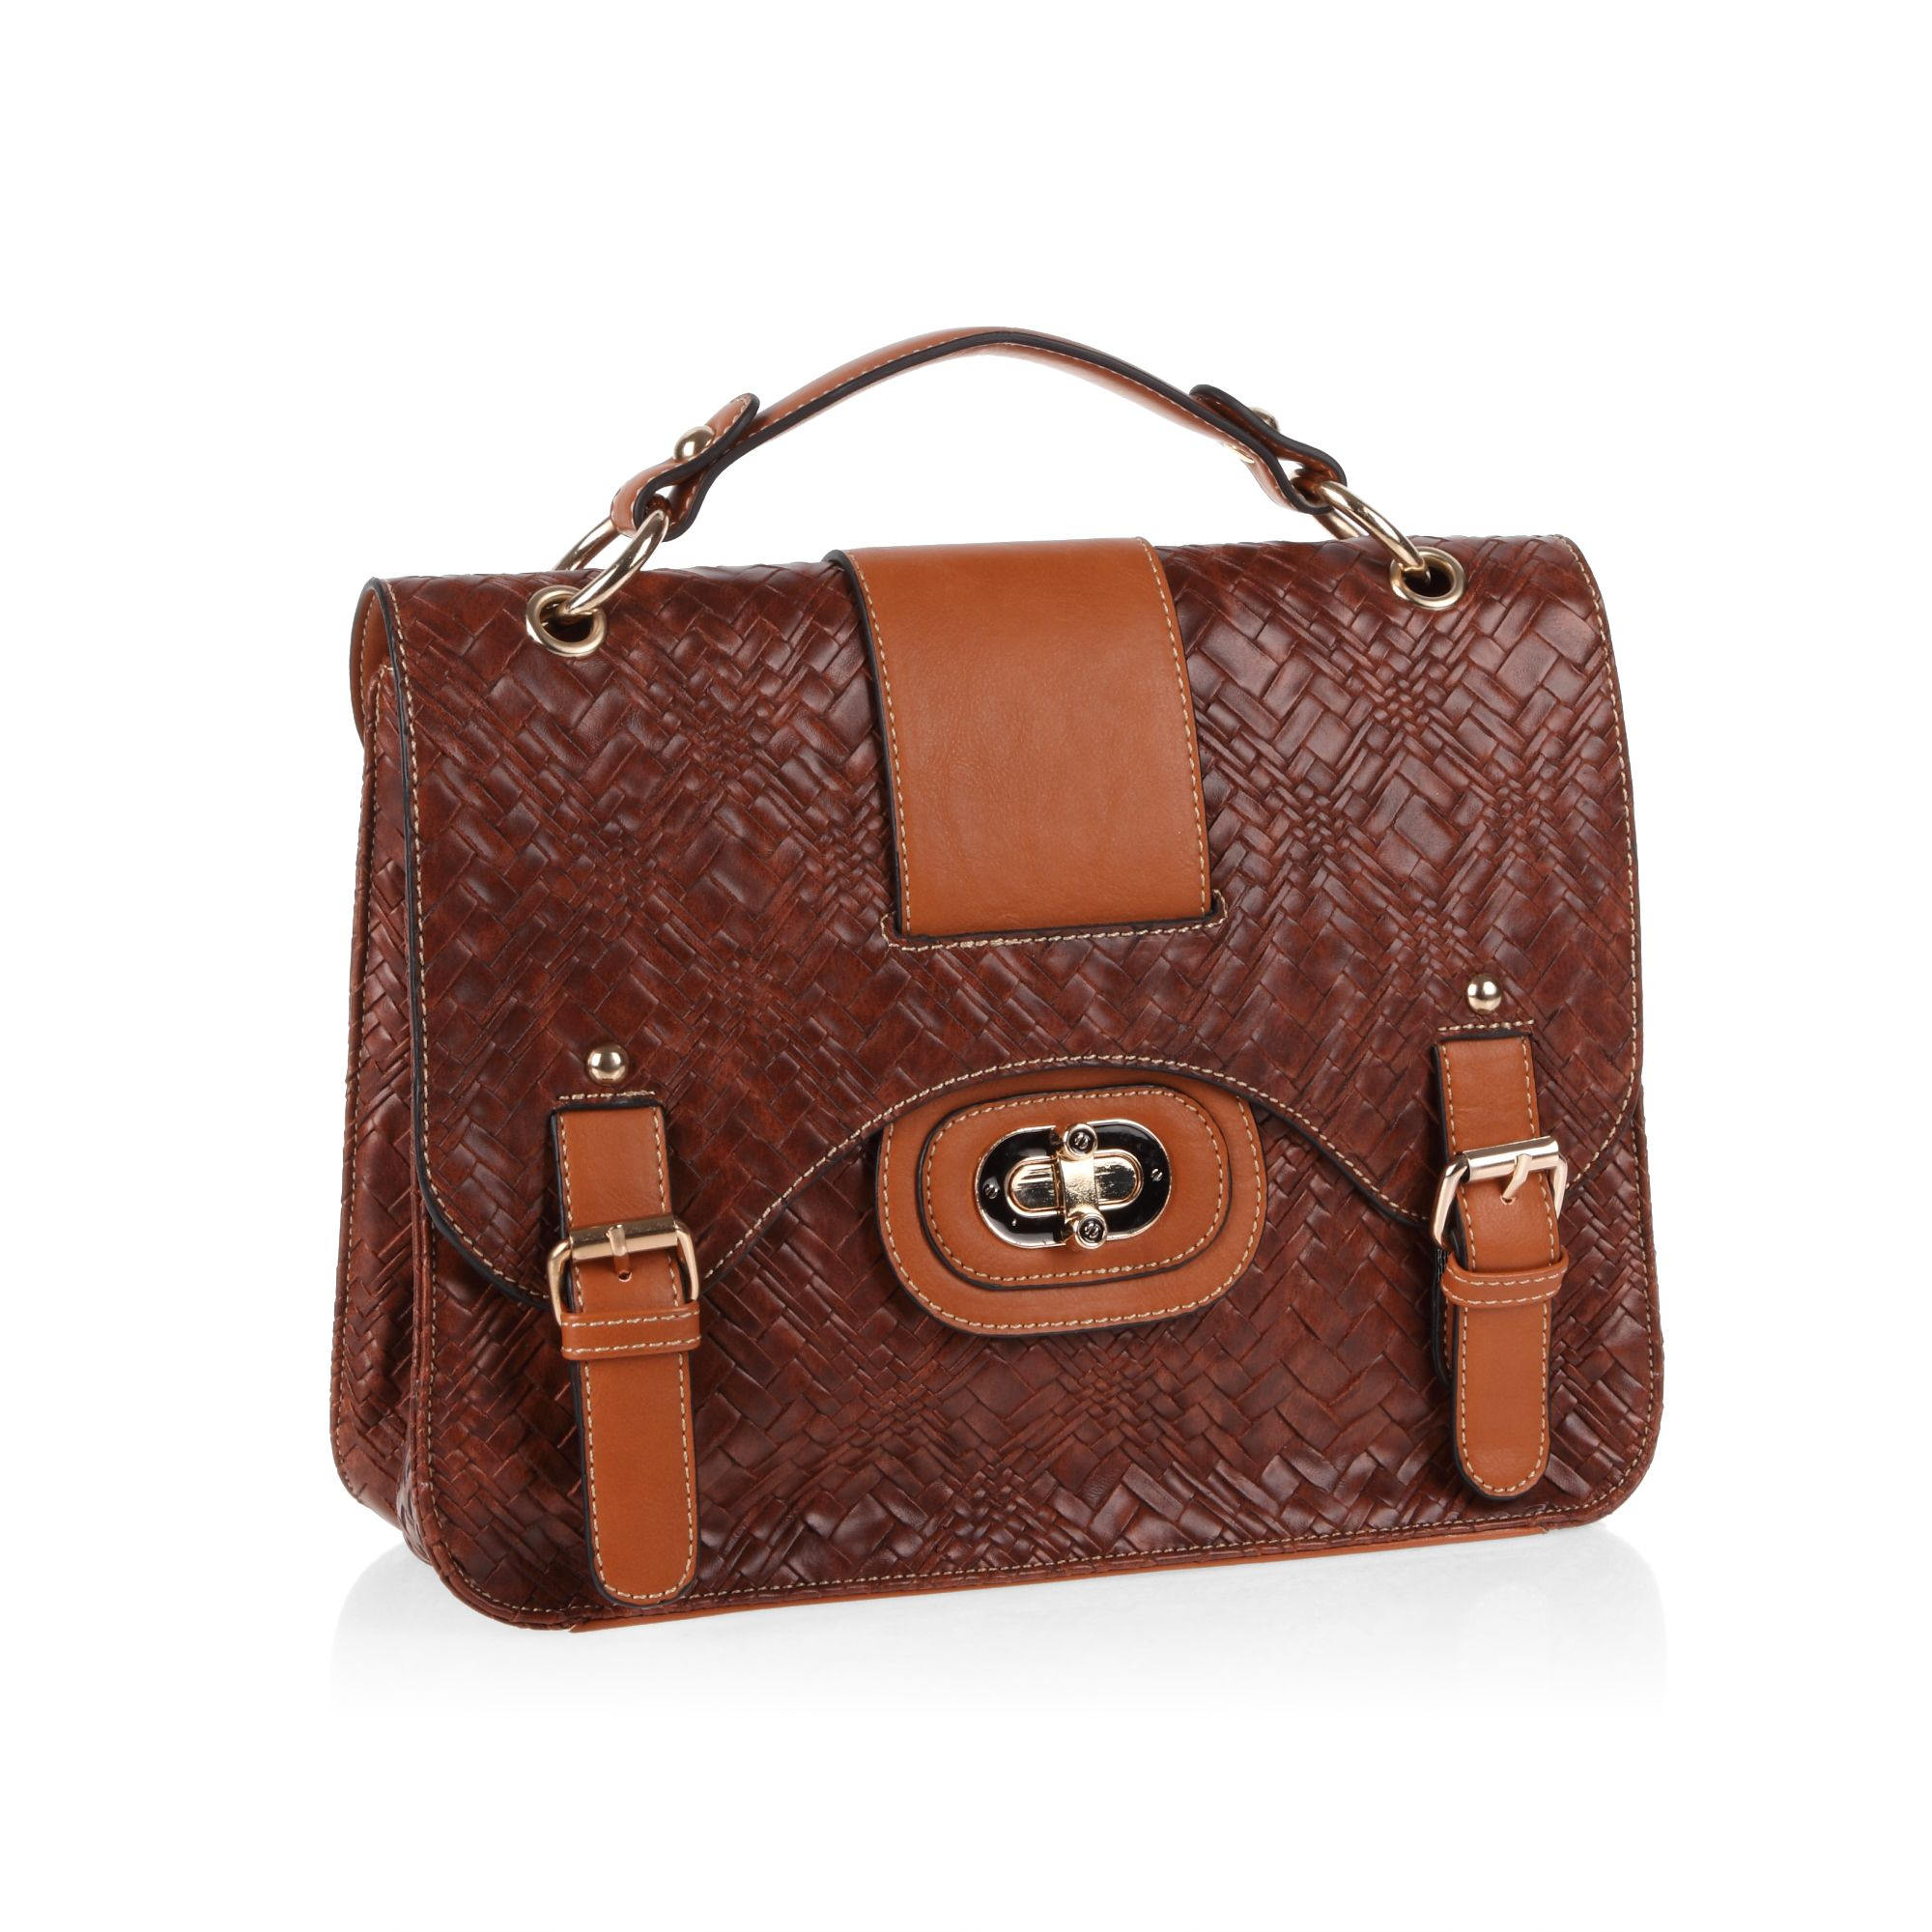 Flapover woven effect print satchel bag